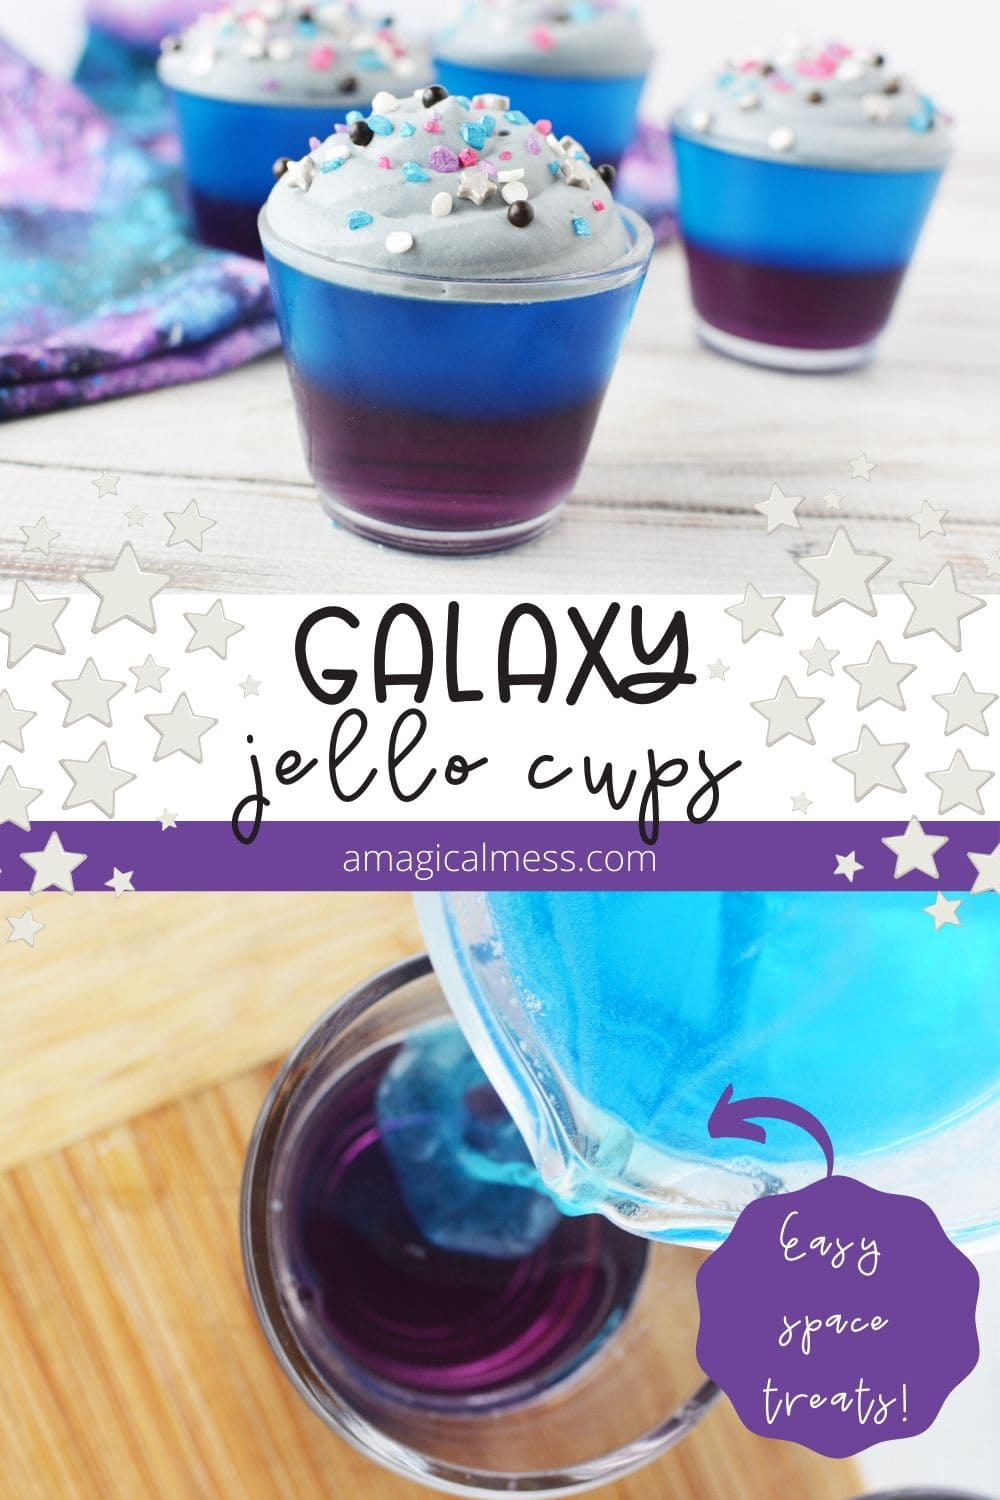 Galaxy jello cups on a table